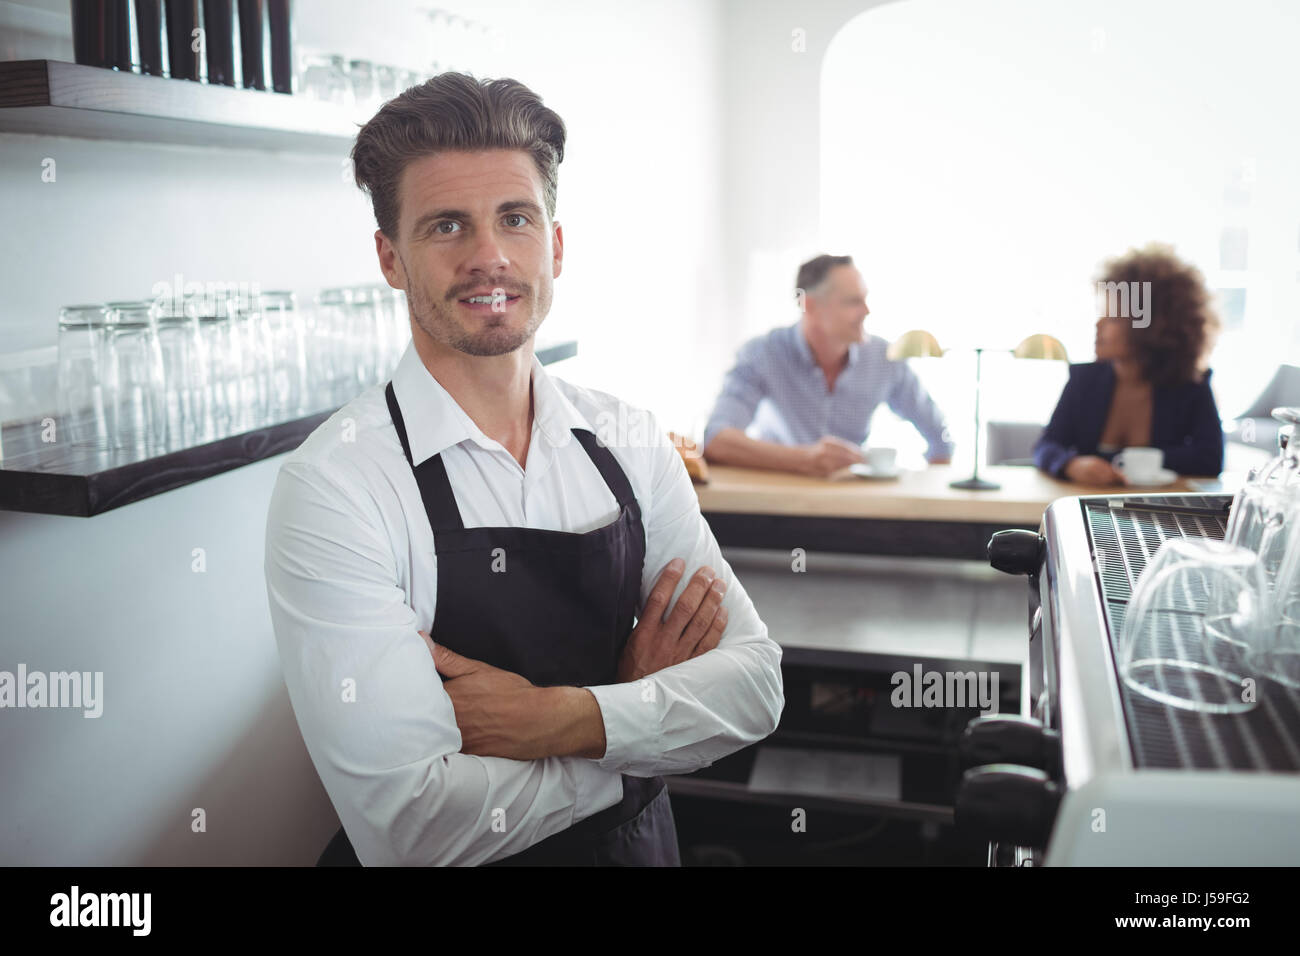 Portrait of waiter standing with arms crossed at counter in restaurant - Stock Image